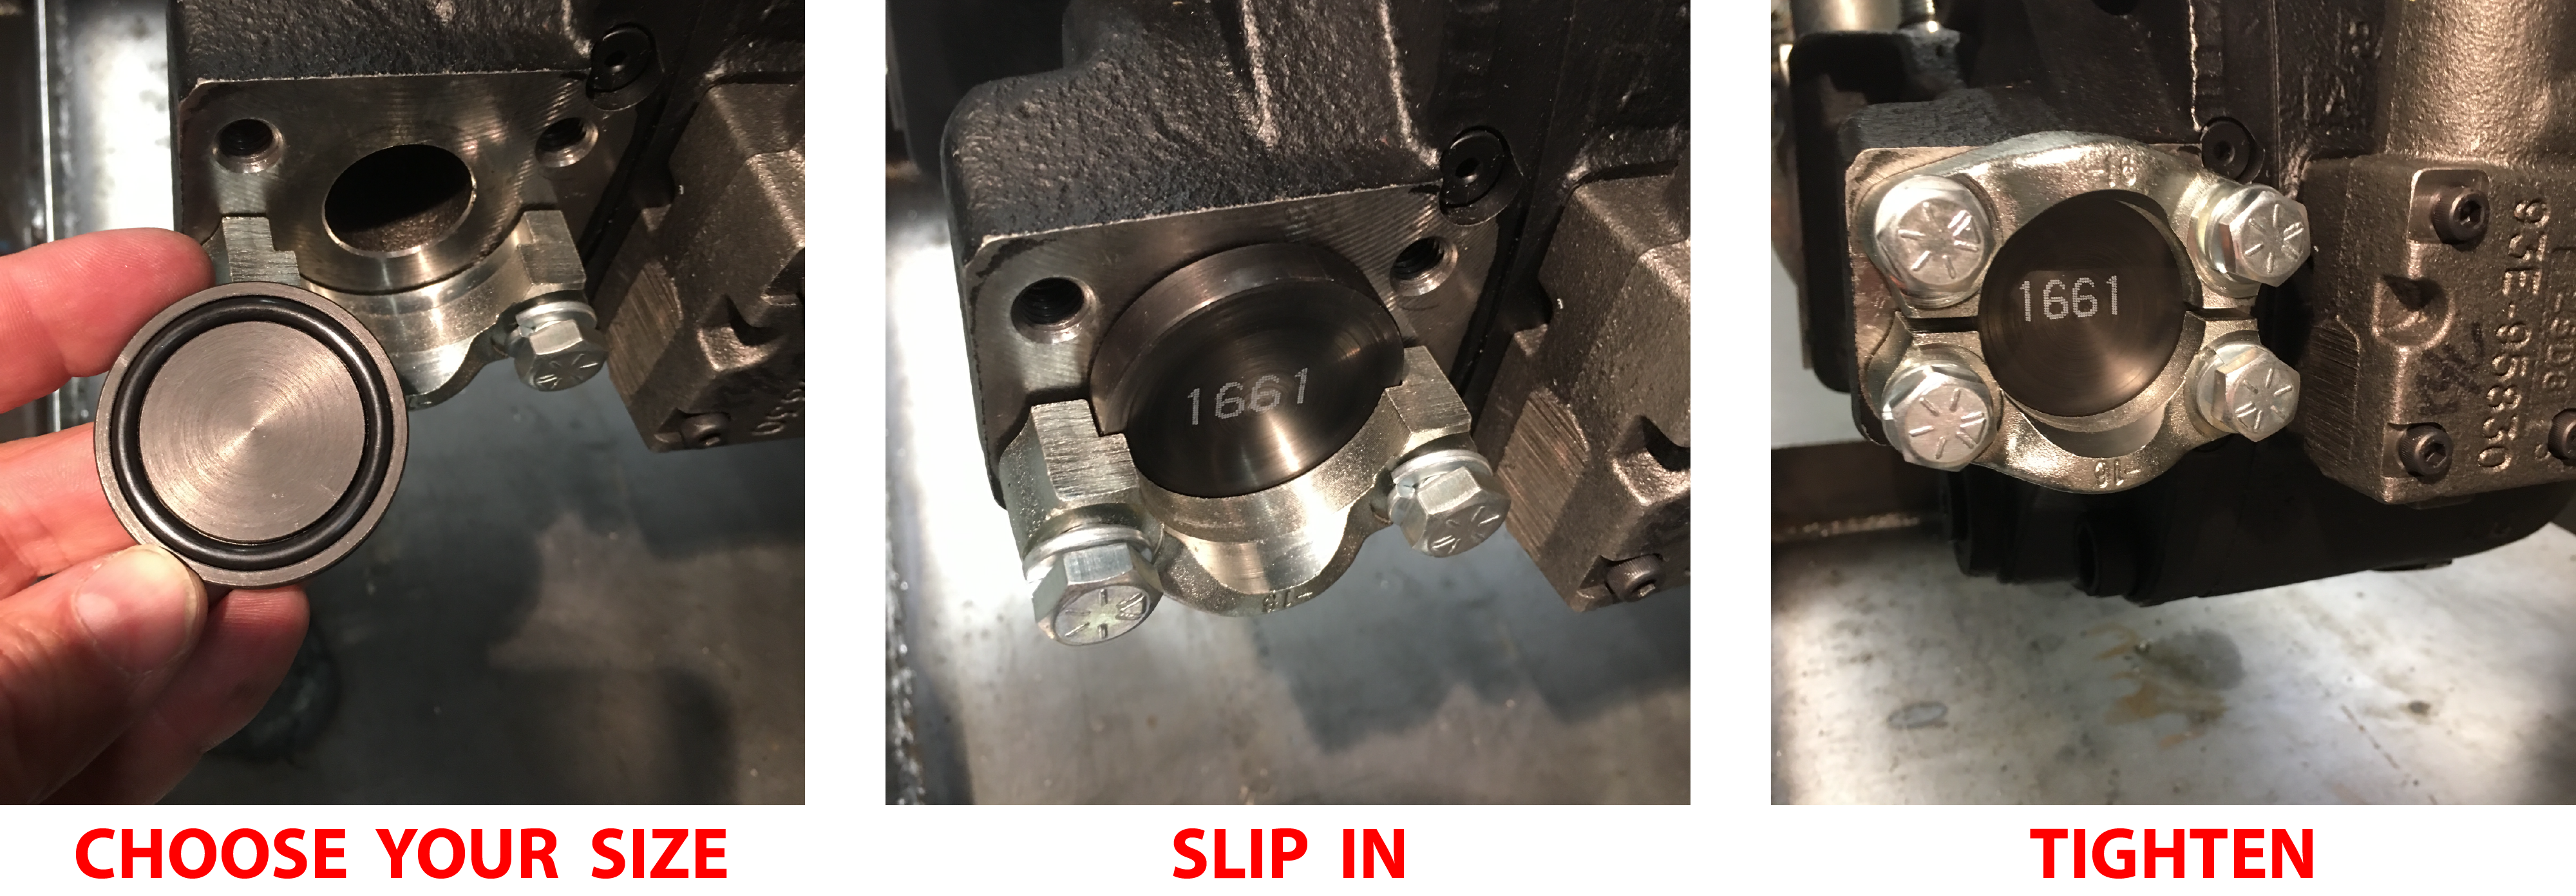 Using FlangeLock slug to seal open port